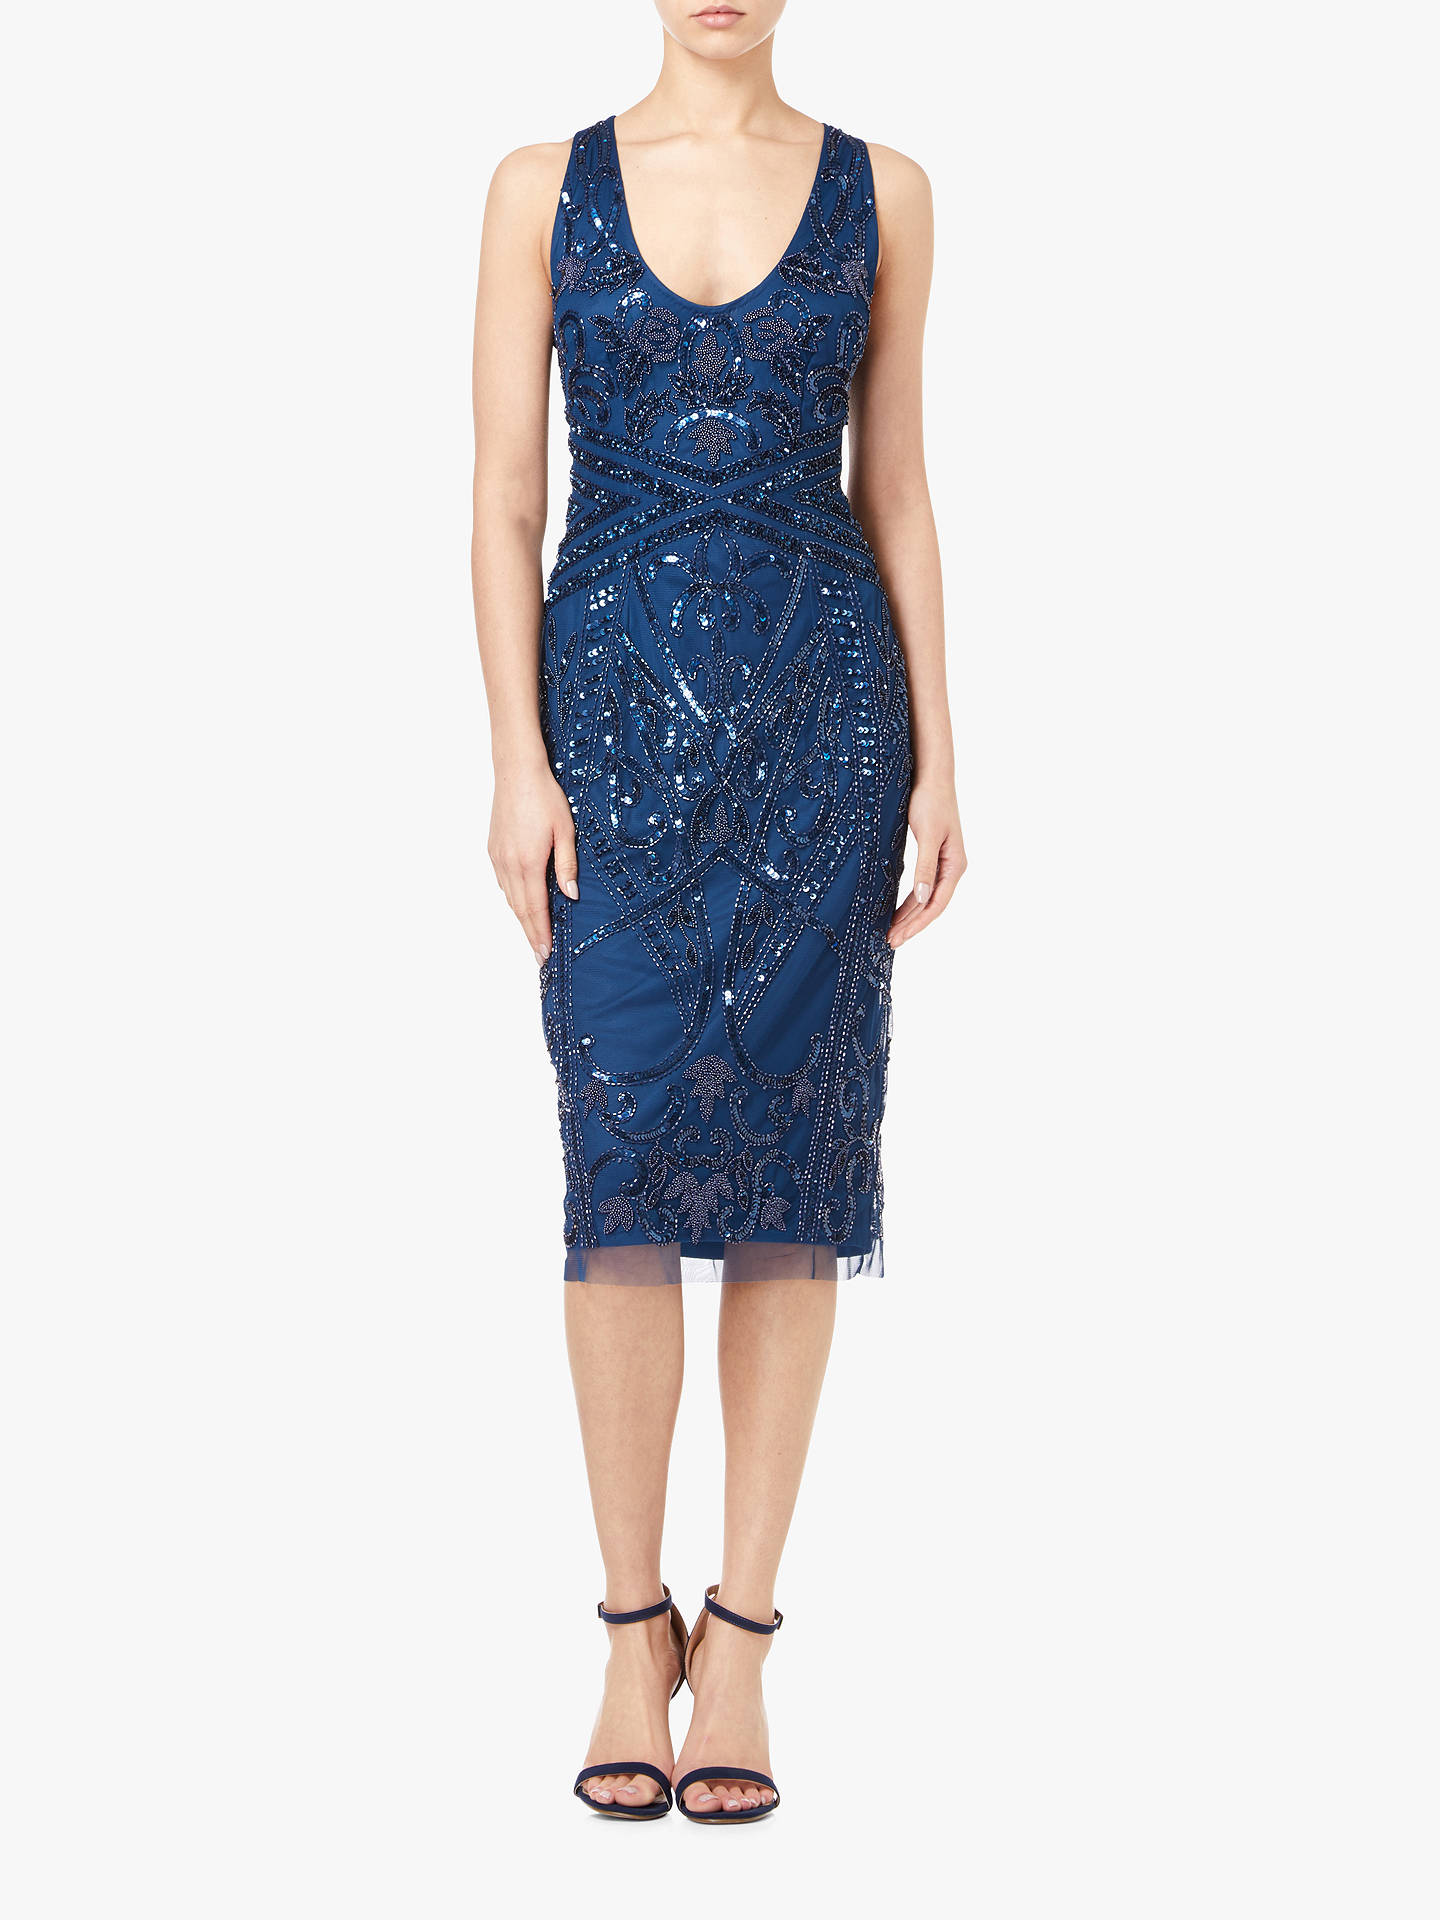 BuyAdrianna Papell Beaded Cocktail Dress, Deep Blue, 6 Online at johnlewis.com